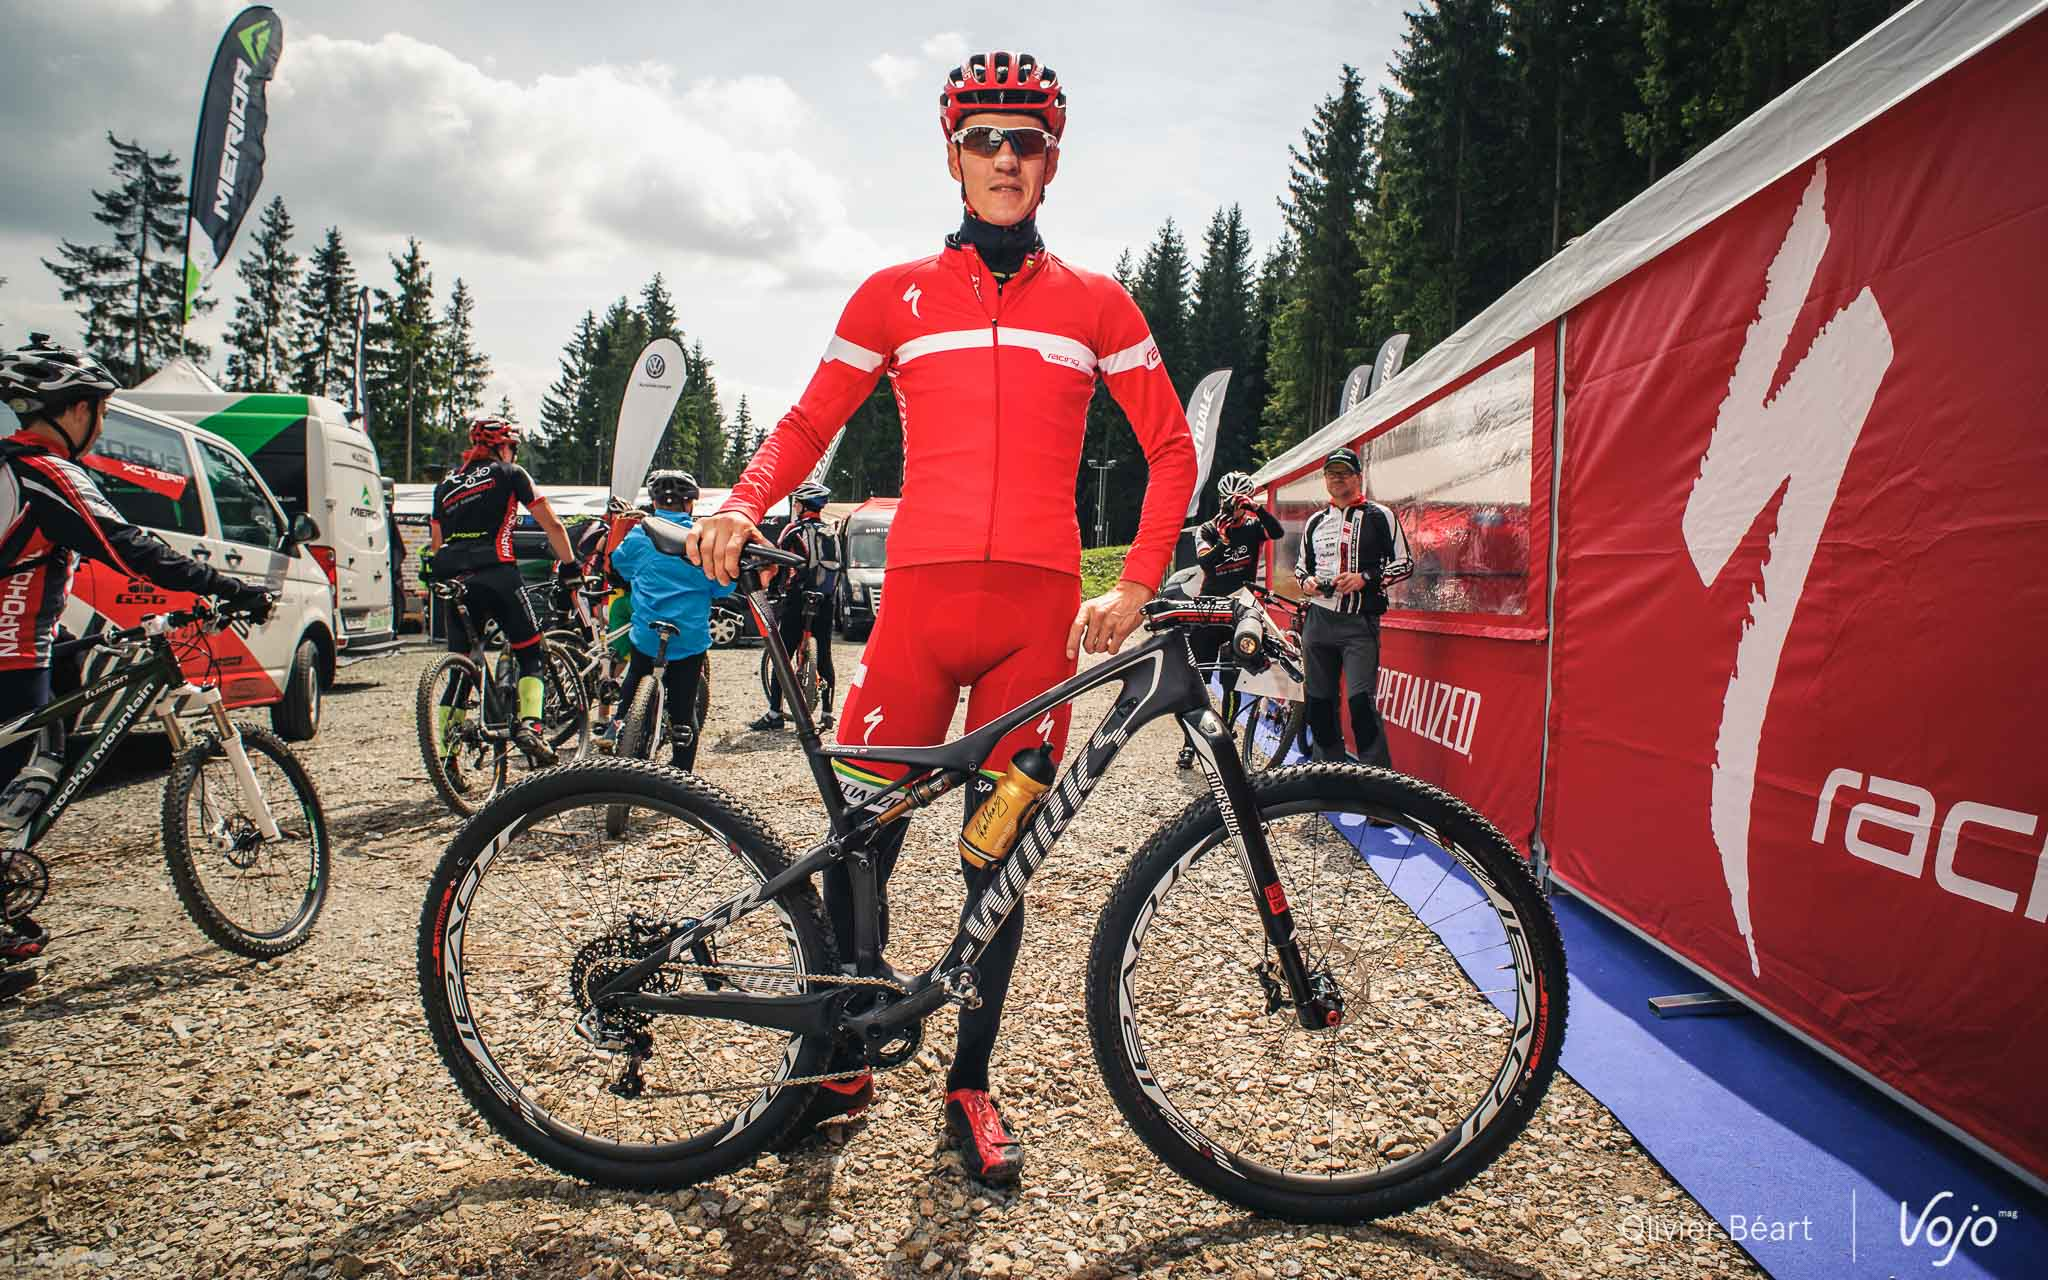 World_Cup_MTB_Pro_Bike_Check_Specialized_Epic_Jaroslav_Kulhavy_Copyright_OBeart_VojoMag-1